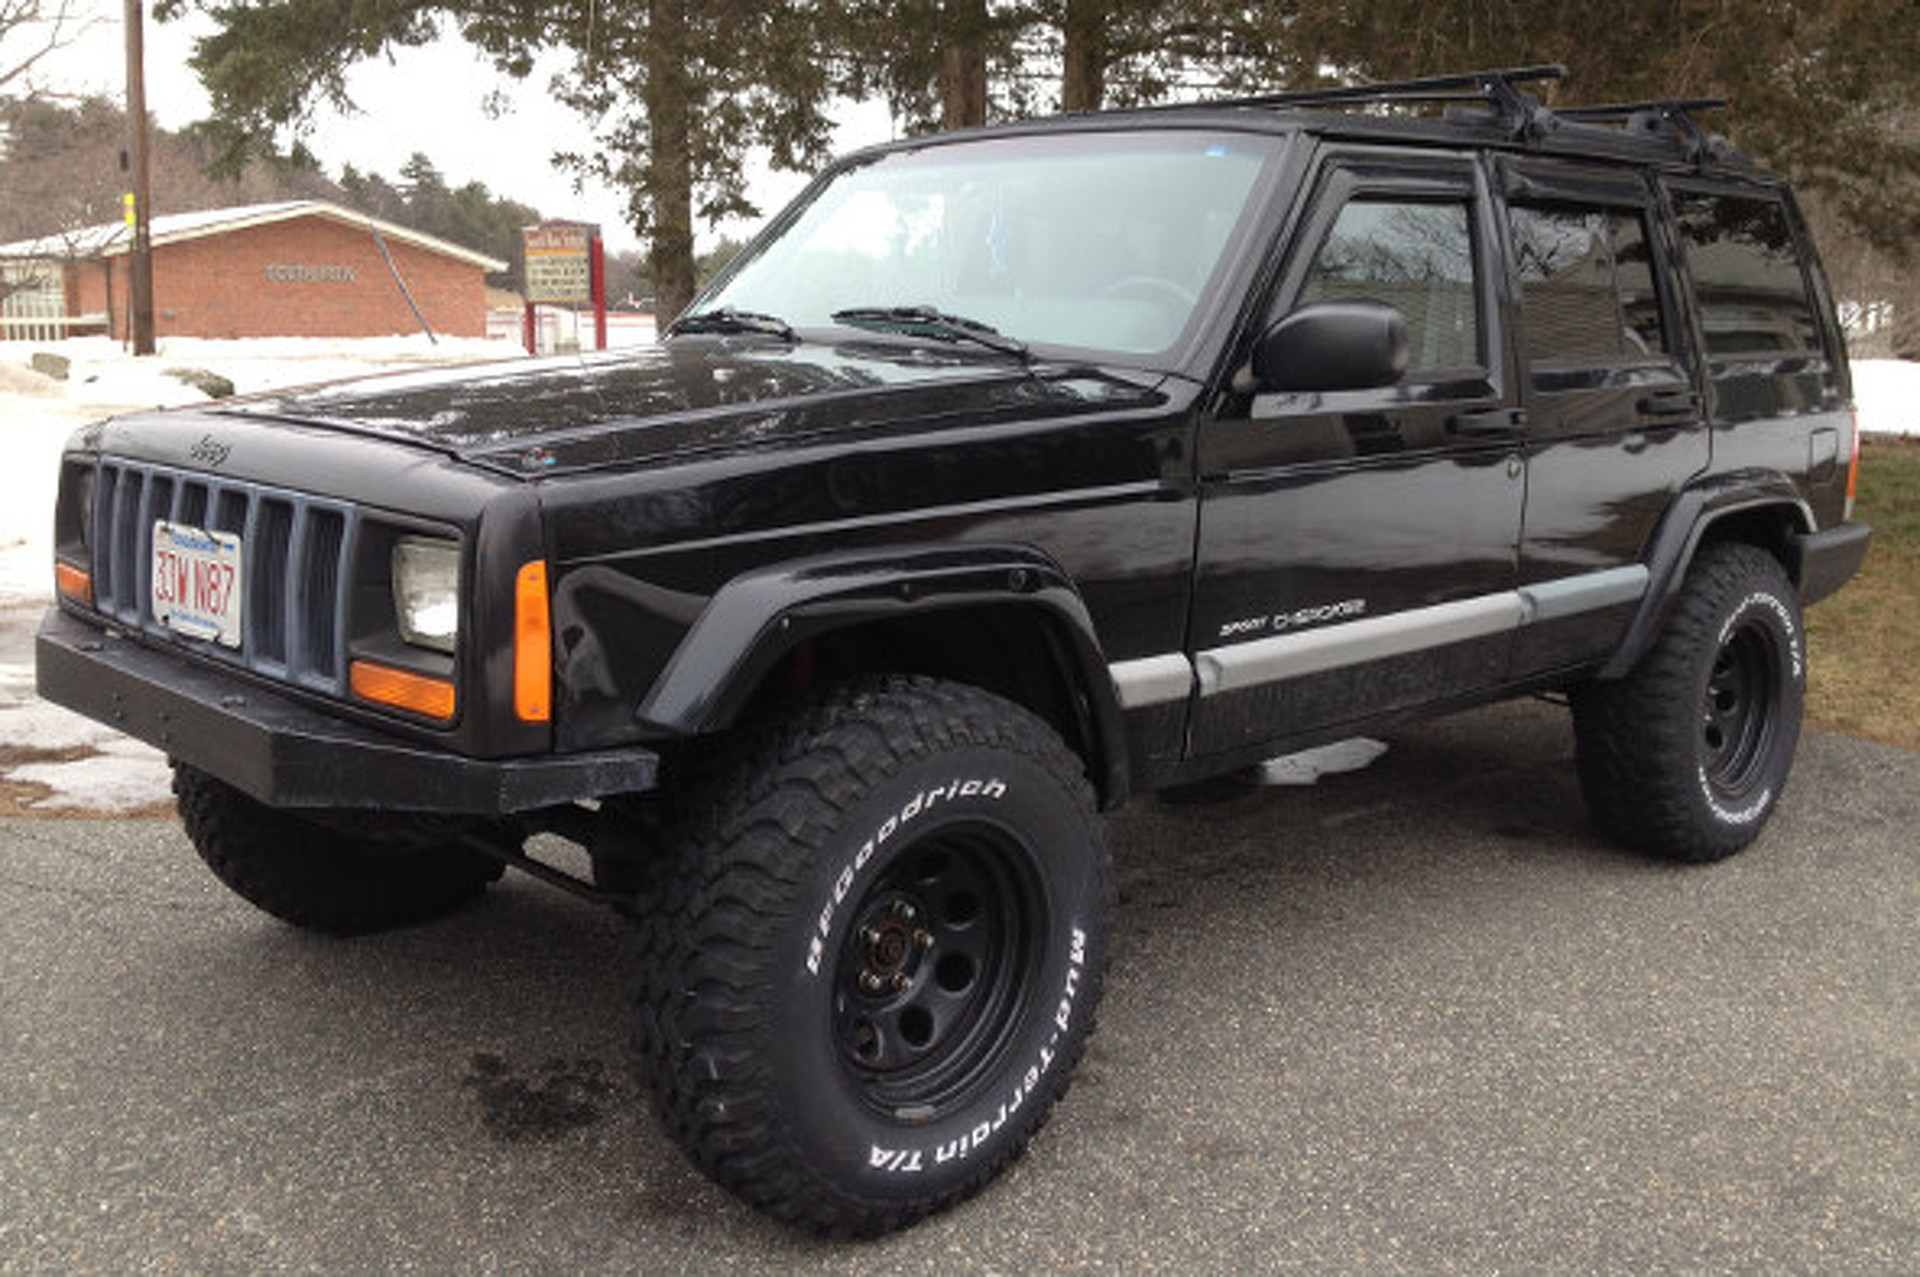 Showthread also Bill in addition 1998 JEEP GRAND CHEROKEE CUSTOM SUV 184207 additionally Project Xj as well 163 1007 Manual Transmission Trucks. on 1999 cherokee lifted